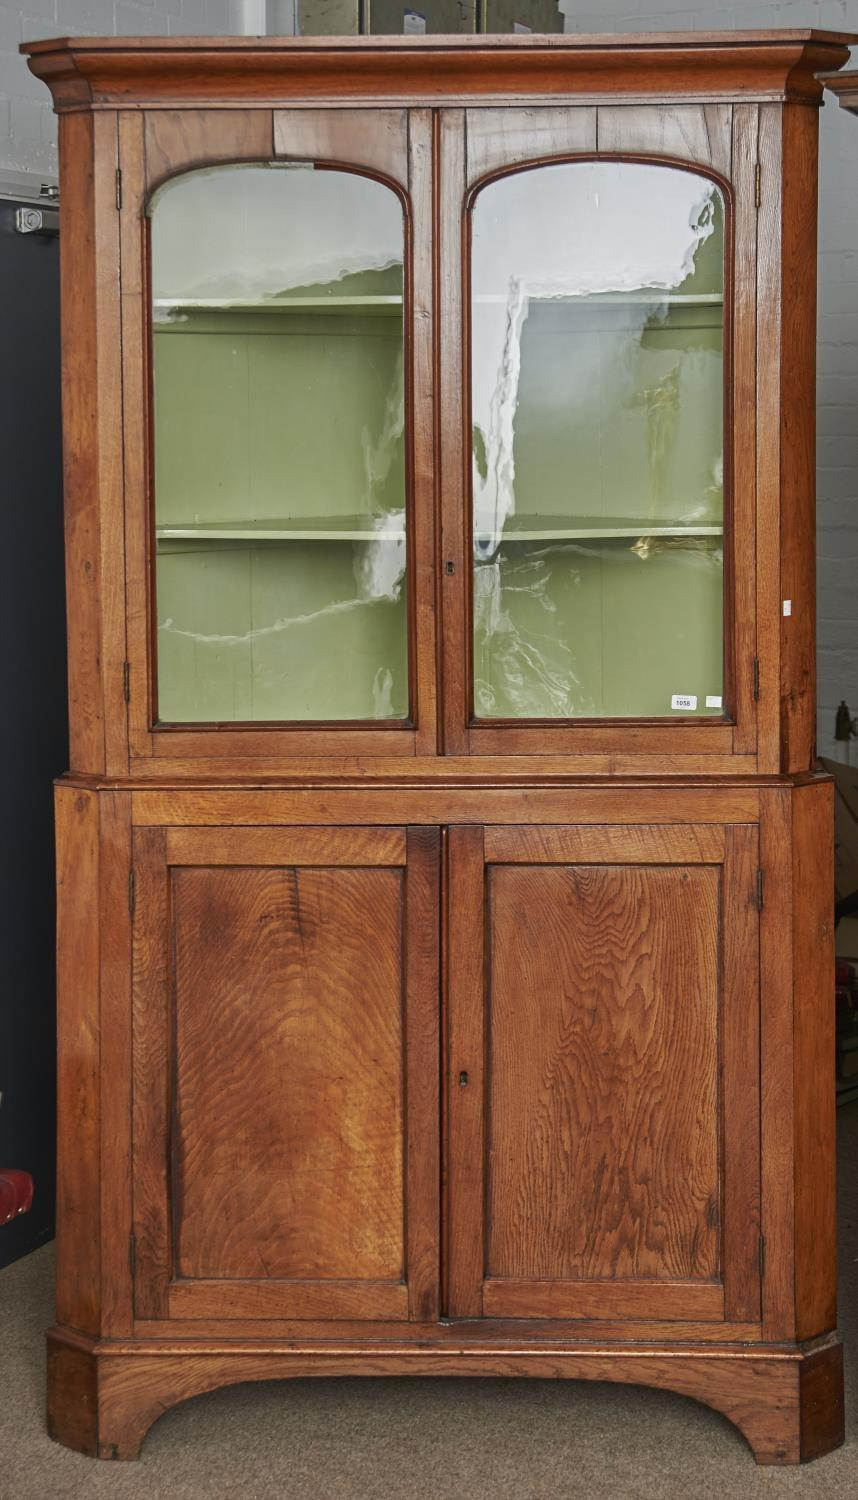 A LARGE GEORGE IV OAK STANDING CORNER CABINET, C1830, FLARED CAVETTO CORNICE ABOVE A PAIR OF